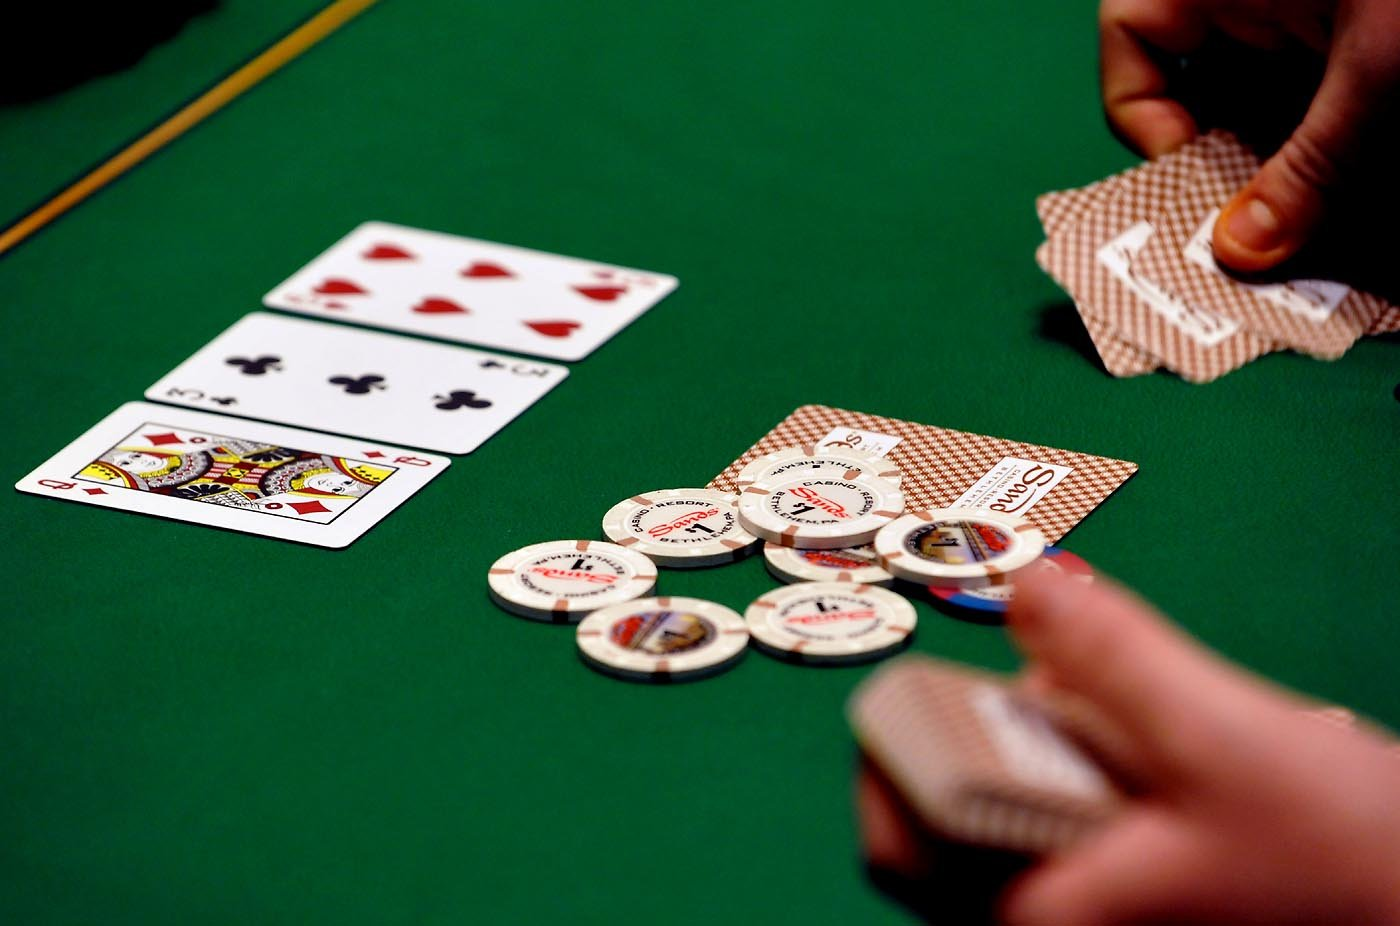 Card Marking-Cheating with Marked Cards in Blackjack Games